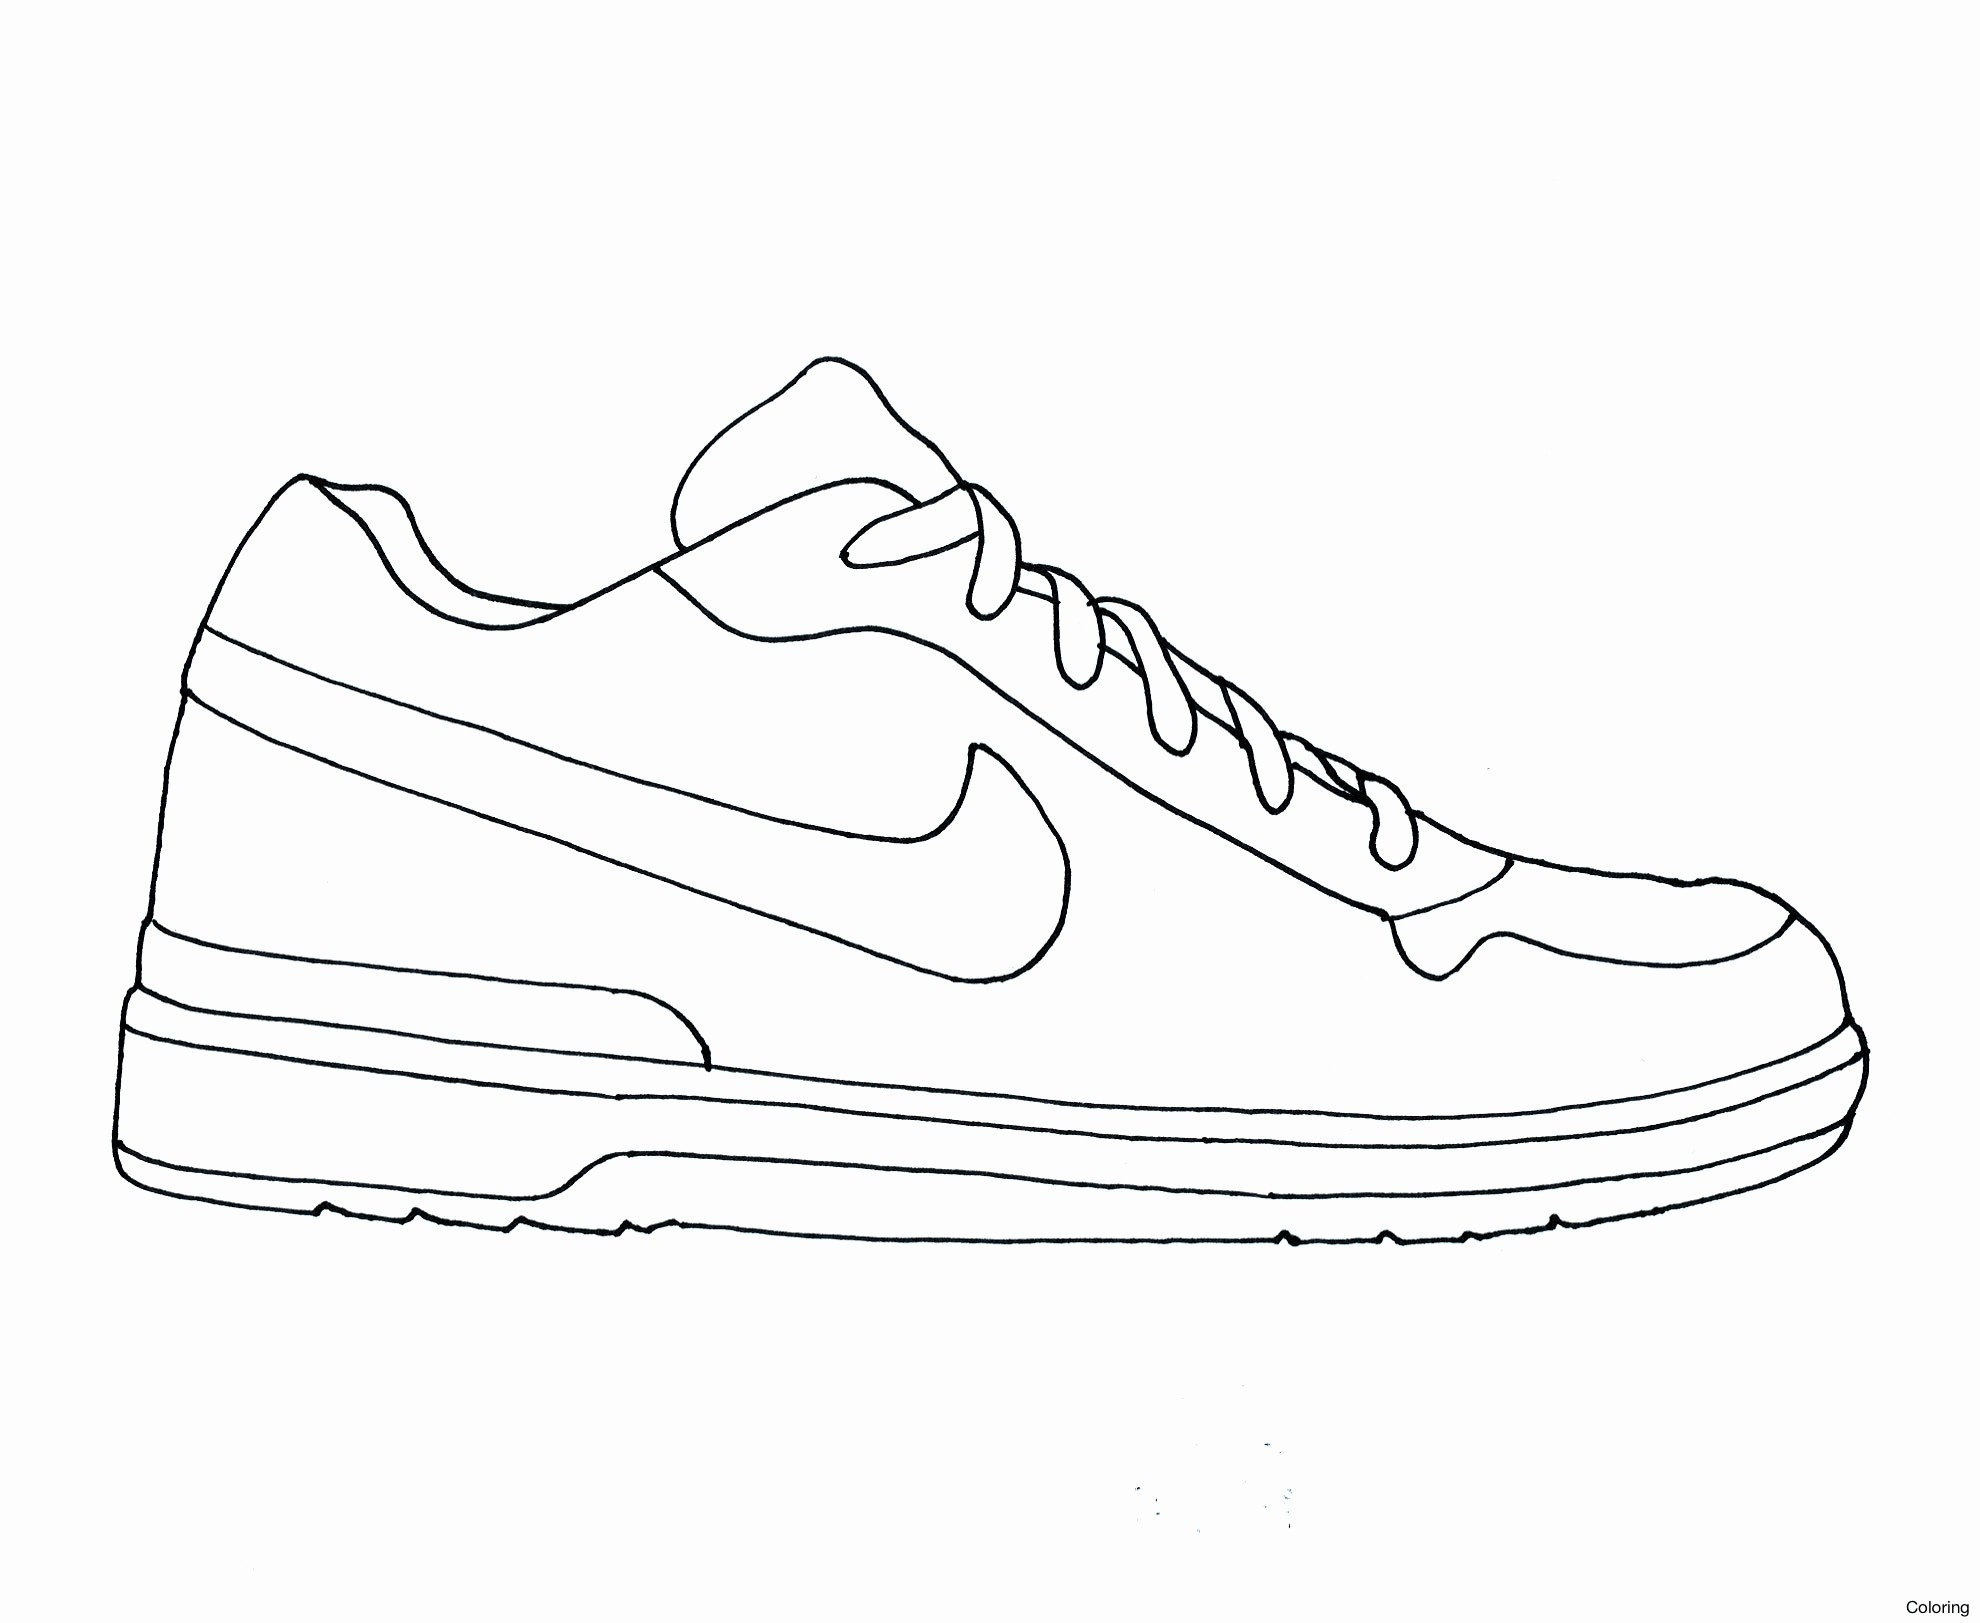 coloring ~ Awesome Nike Shoes Coloring Pages Marinamool Com ...